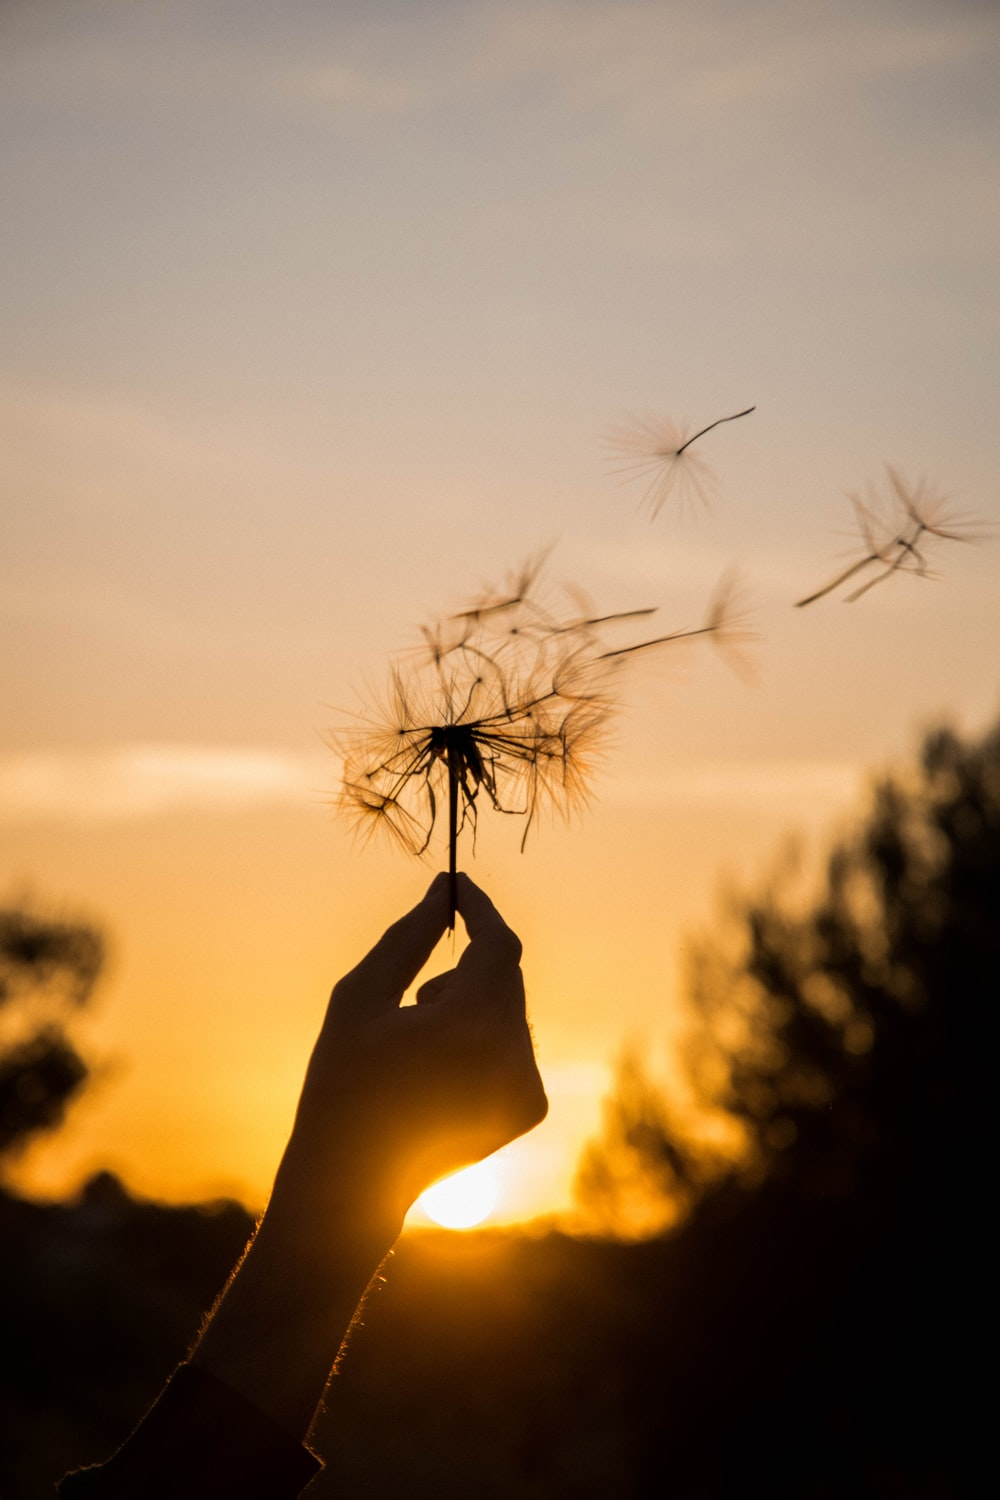 silhouette of person holding flower during sunset